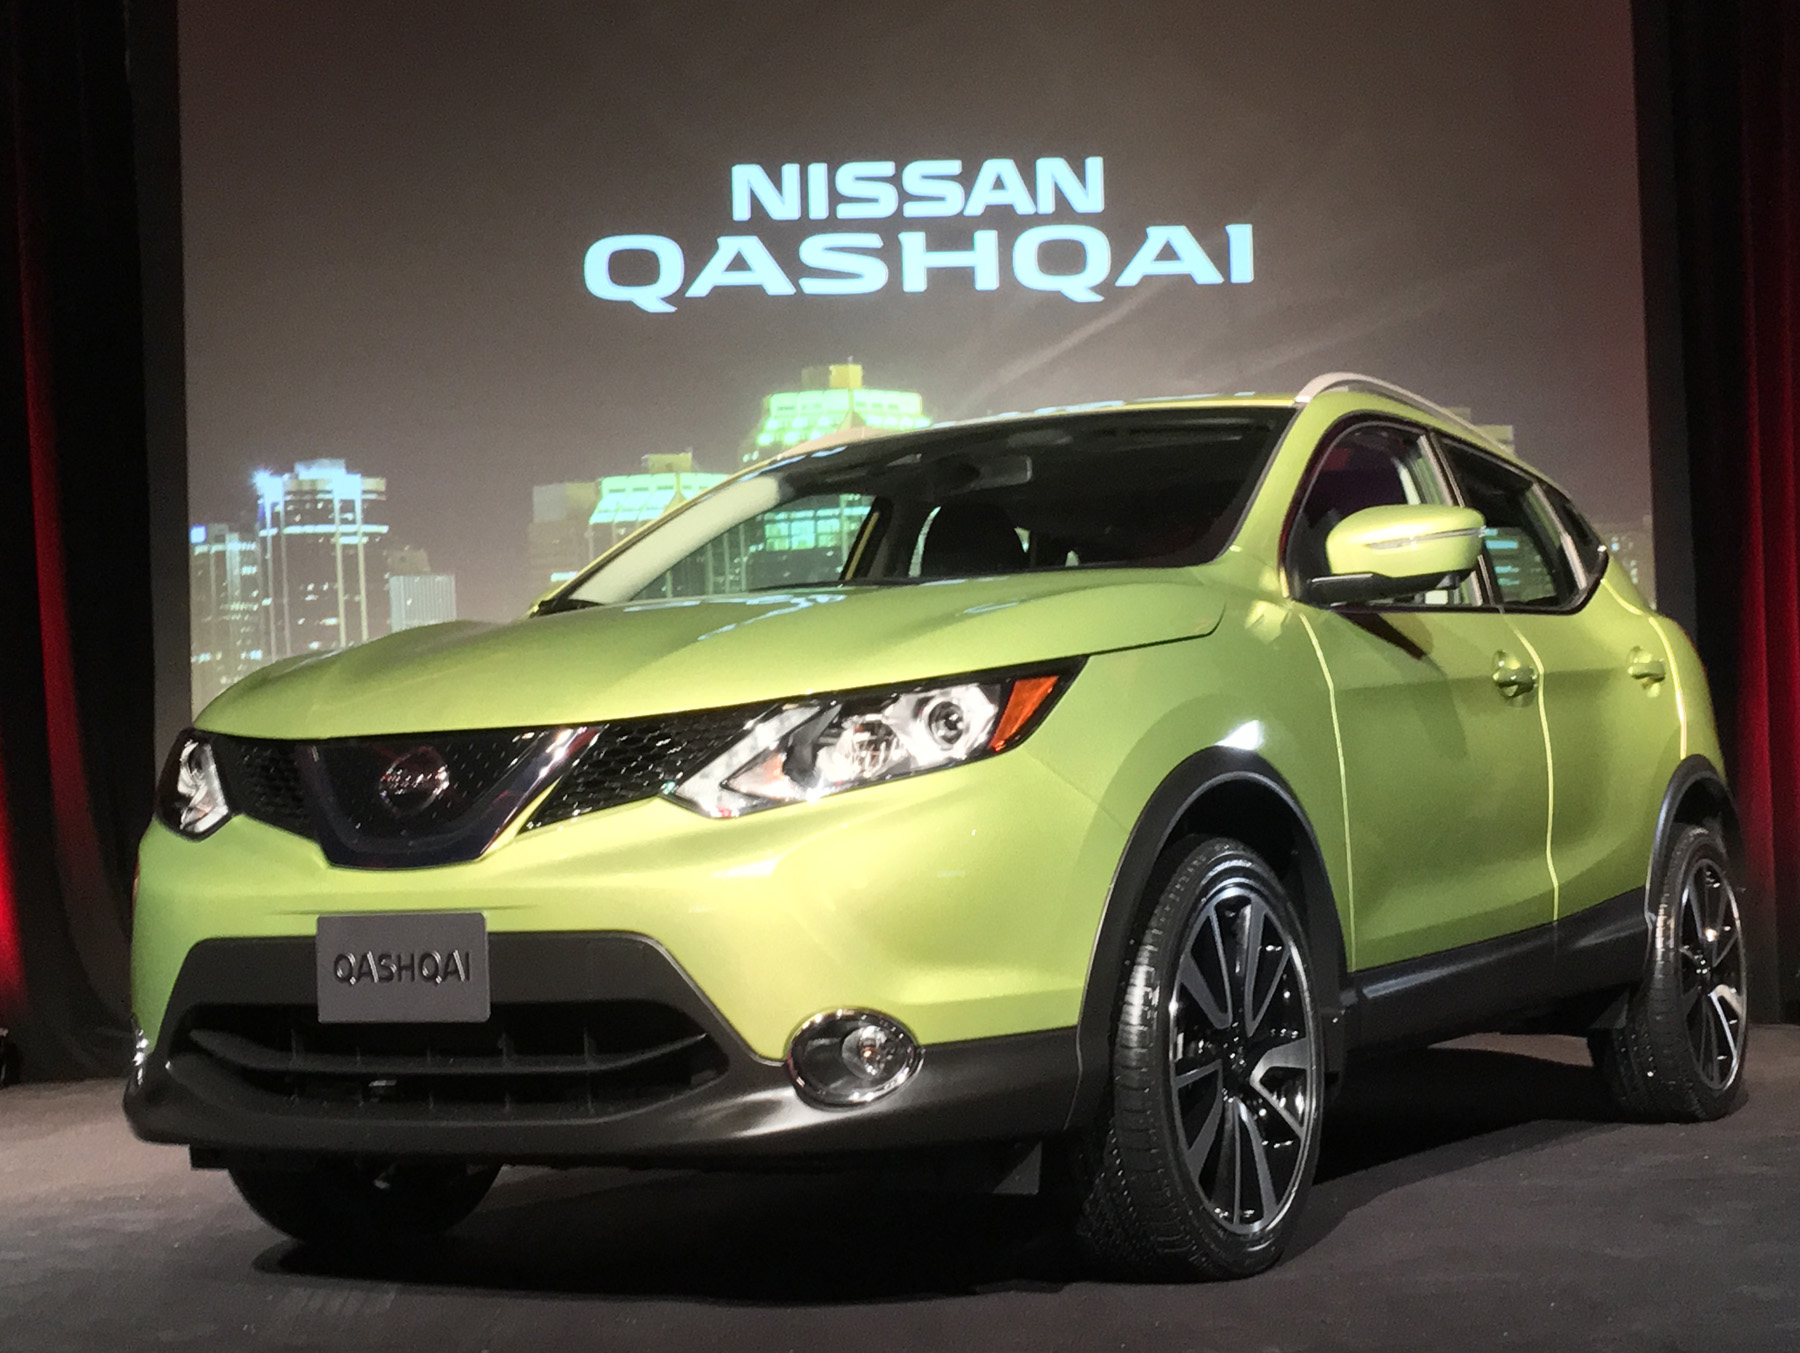 Qashqai finally makes it to Canada – WHEELS.ca